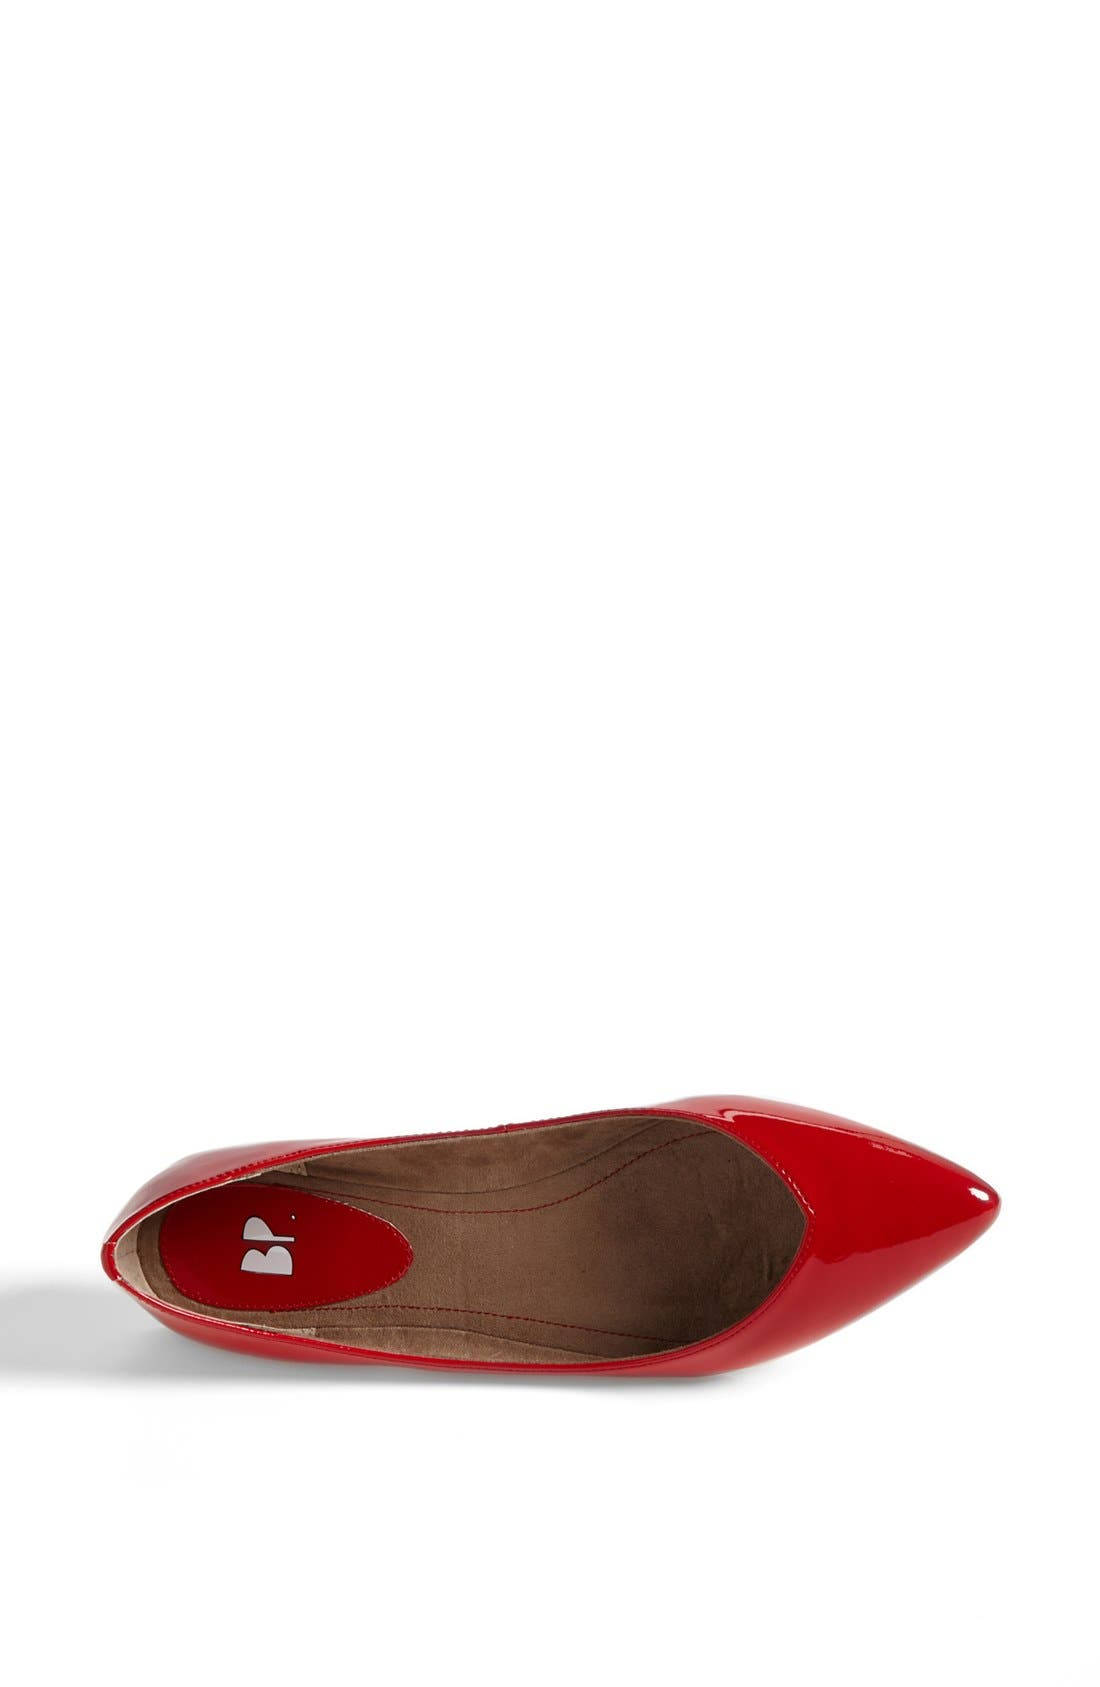 'Moveover' Pointy Toe Flat,                             Alternate thumbnail 34, color,